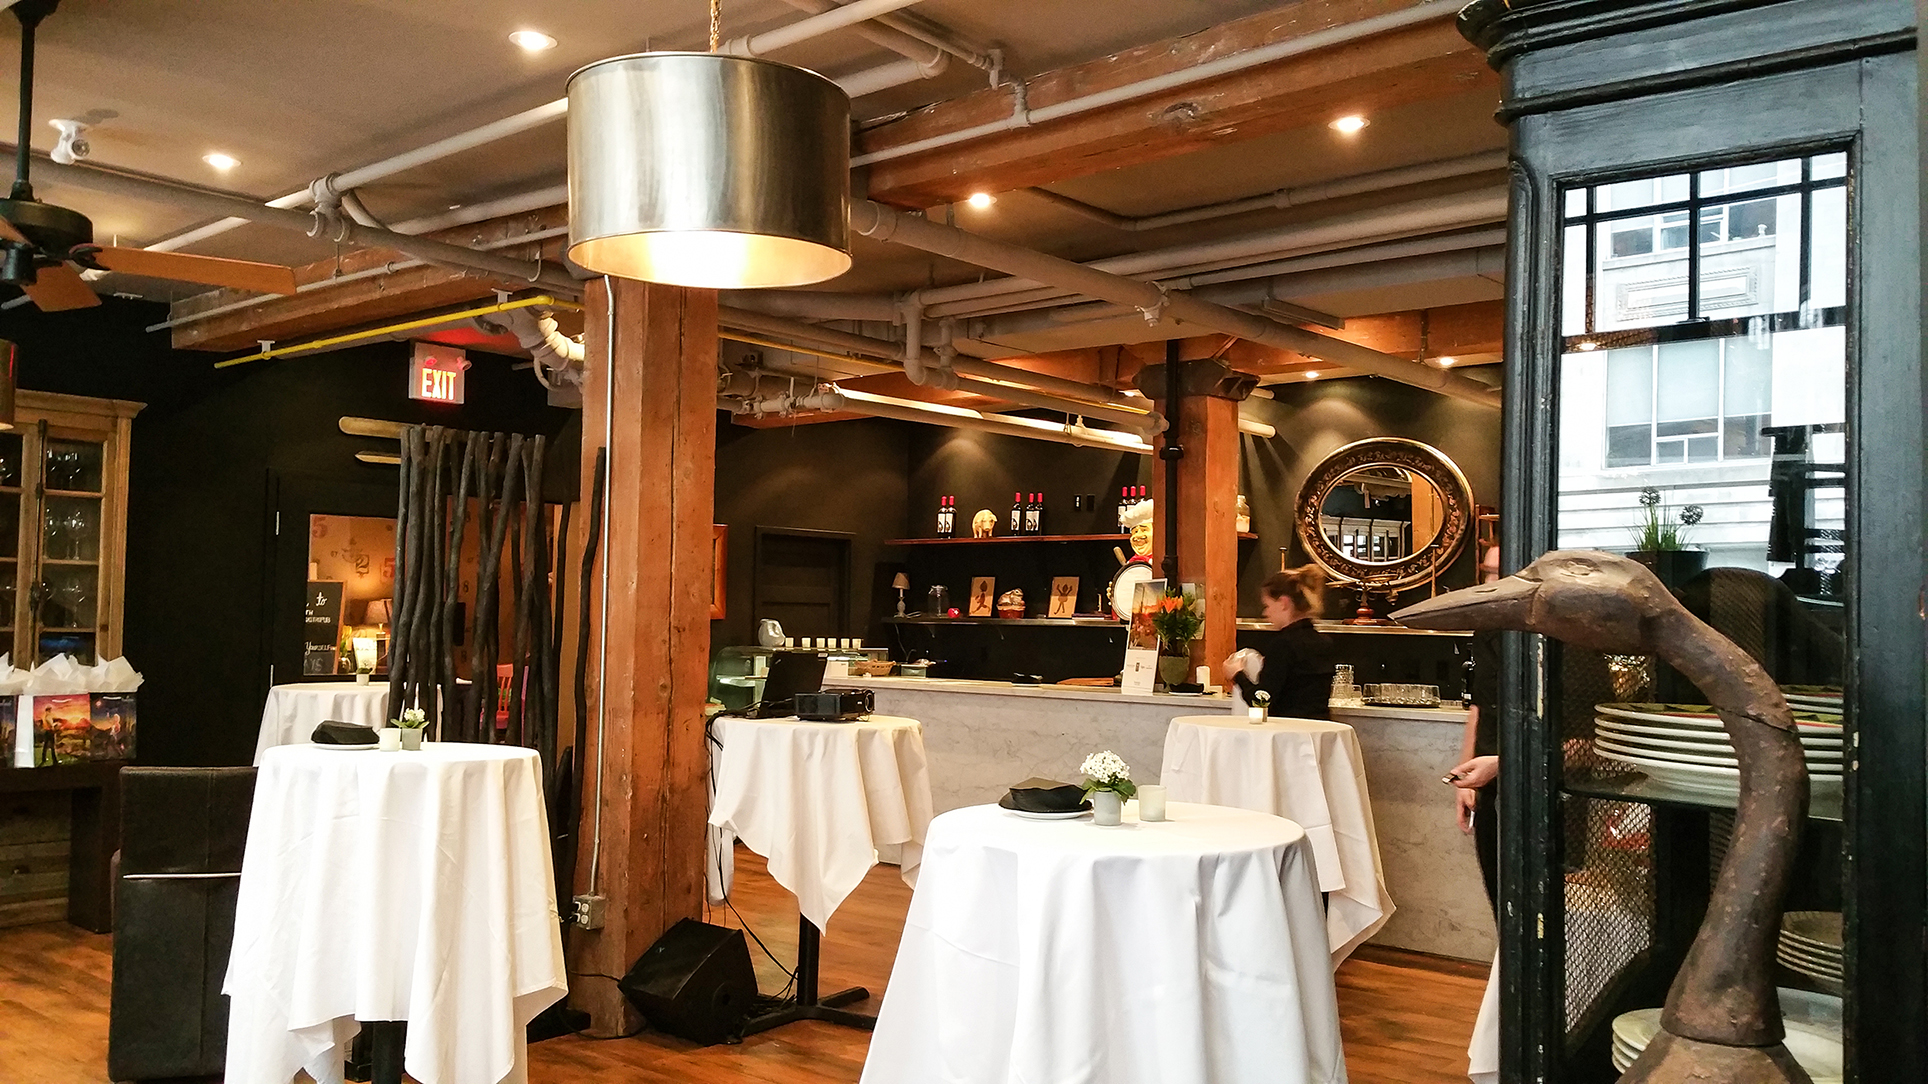 Small Wedding Venues Toronto - One Room - Cocktail Reception